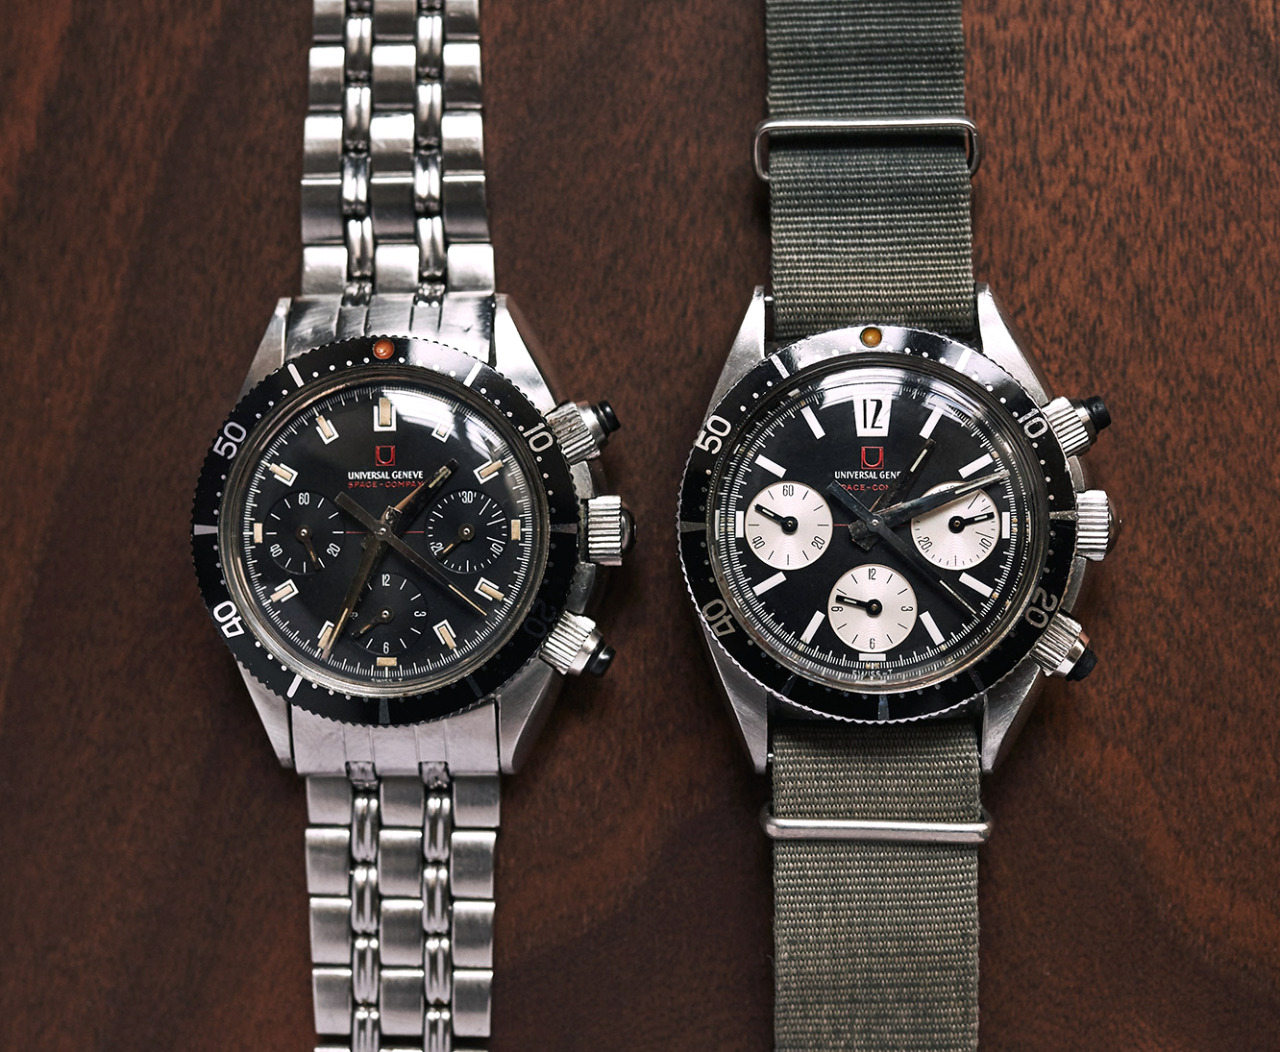 Universal Geneve Spacecompax Mk1 and Mk2